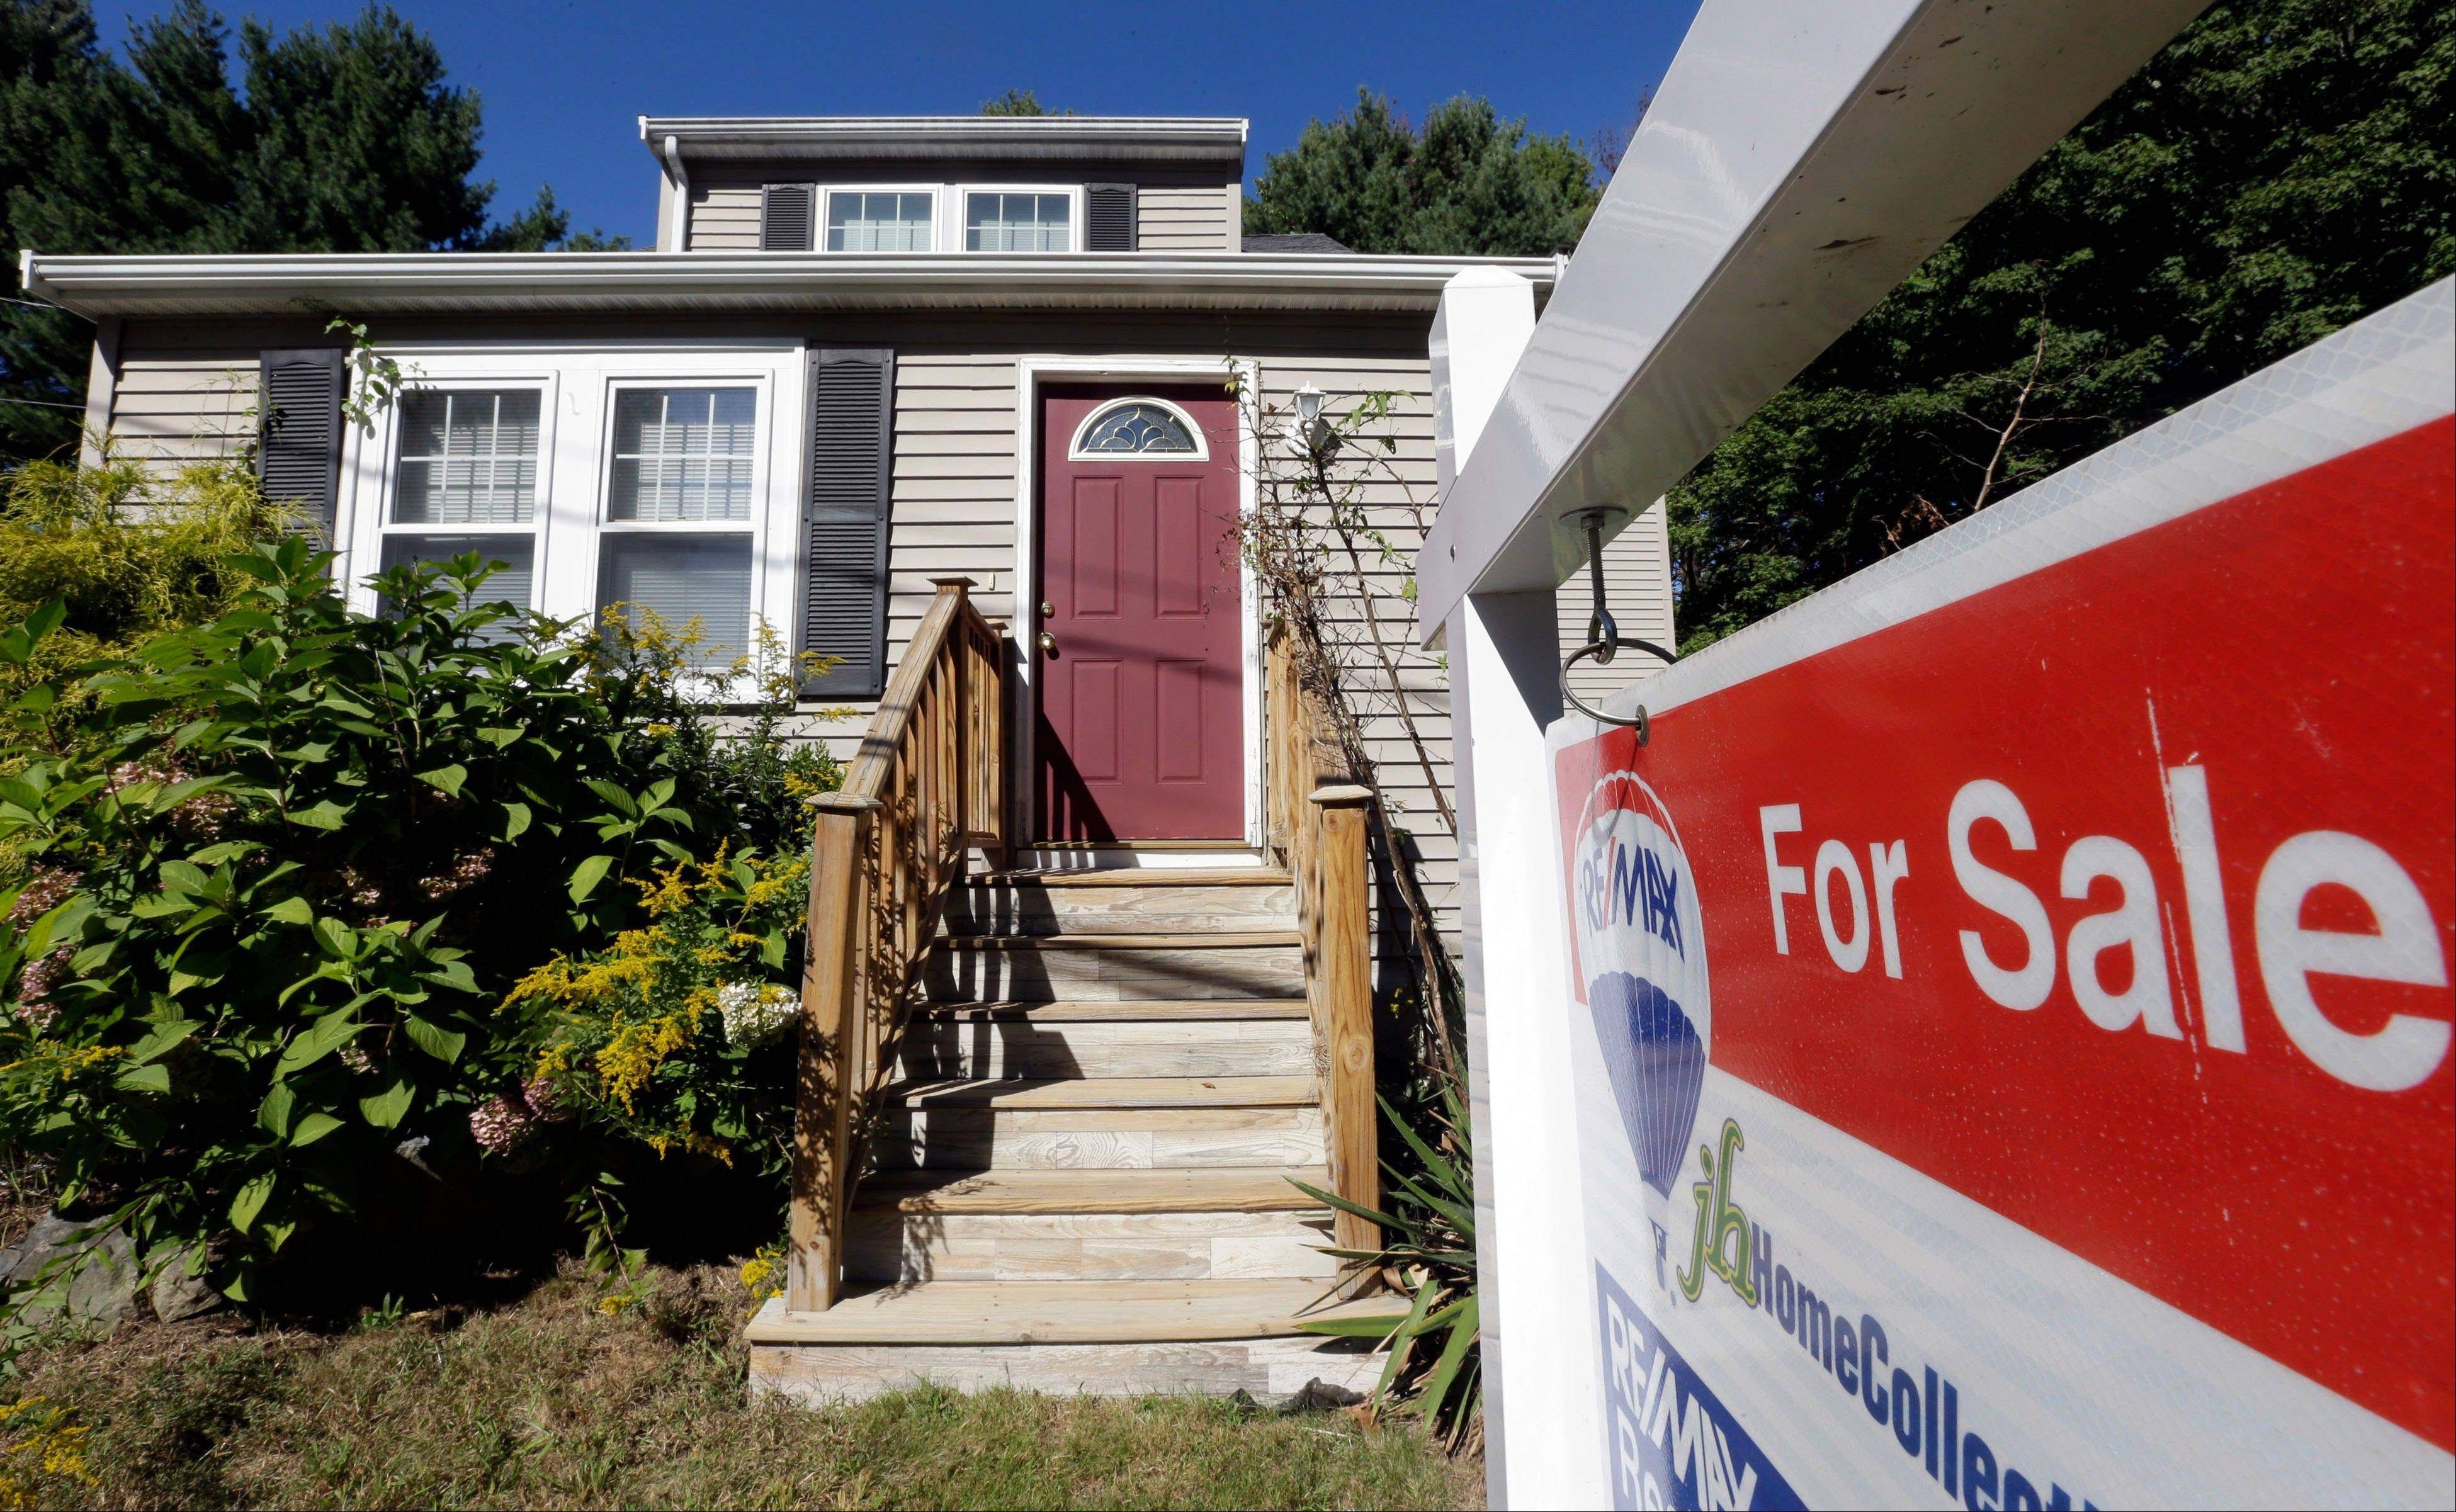 A measure of U.S. home prices rose only slightly in September from August, a sign that prices are leveling off after big gains earlier this year.